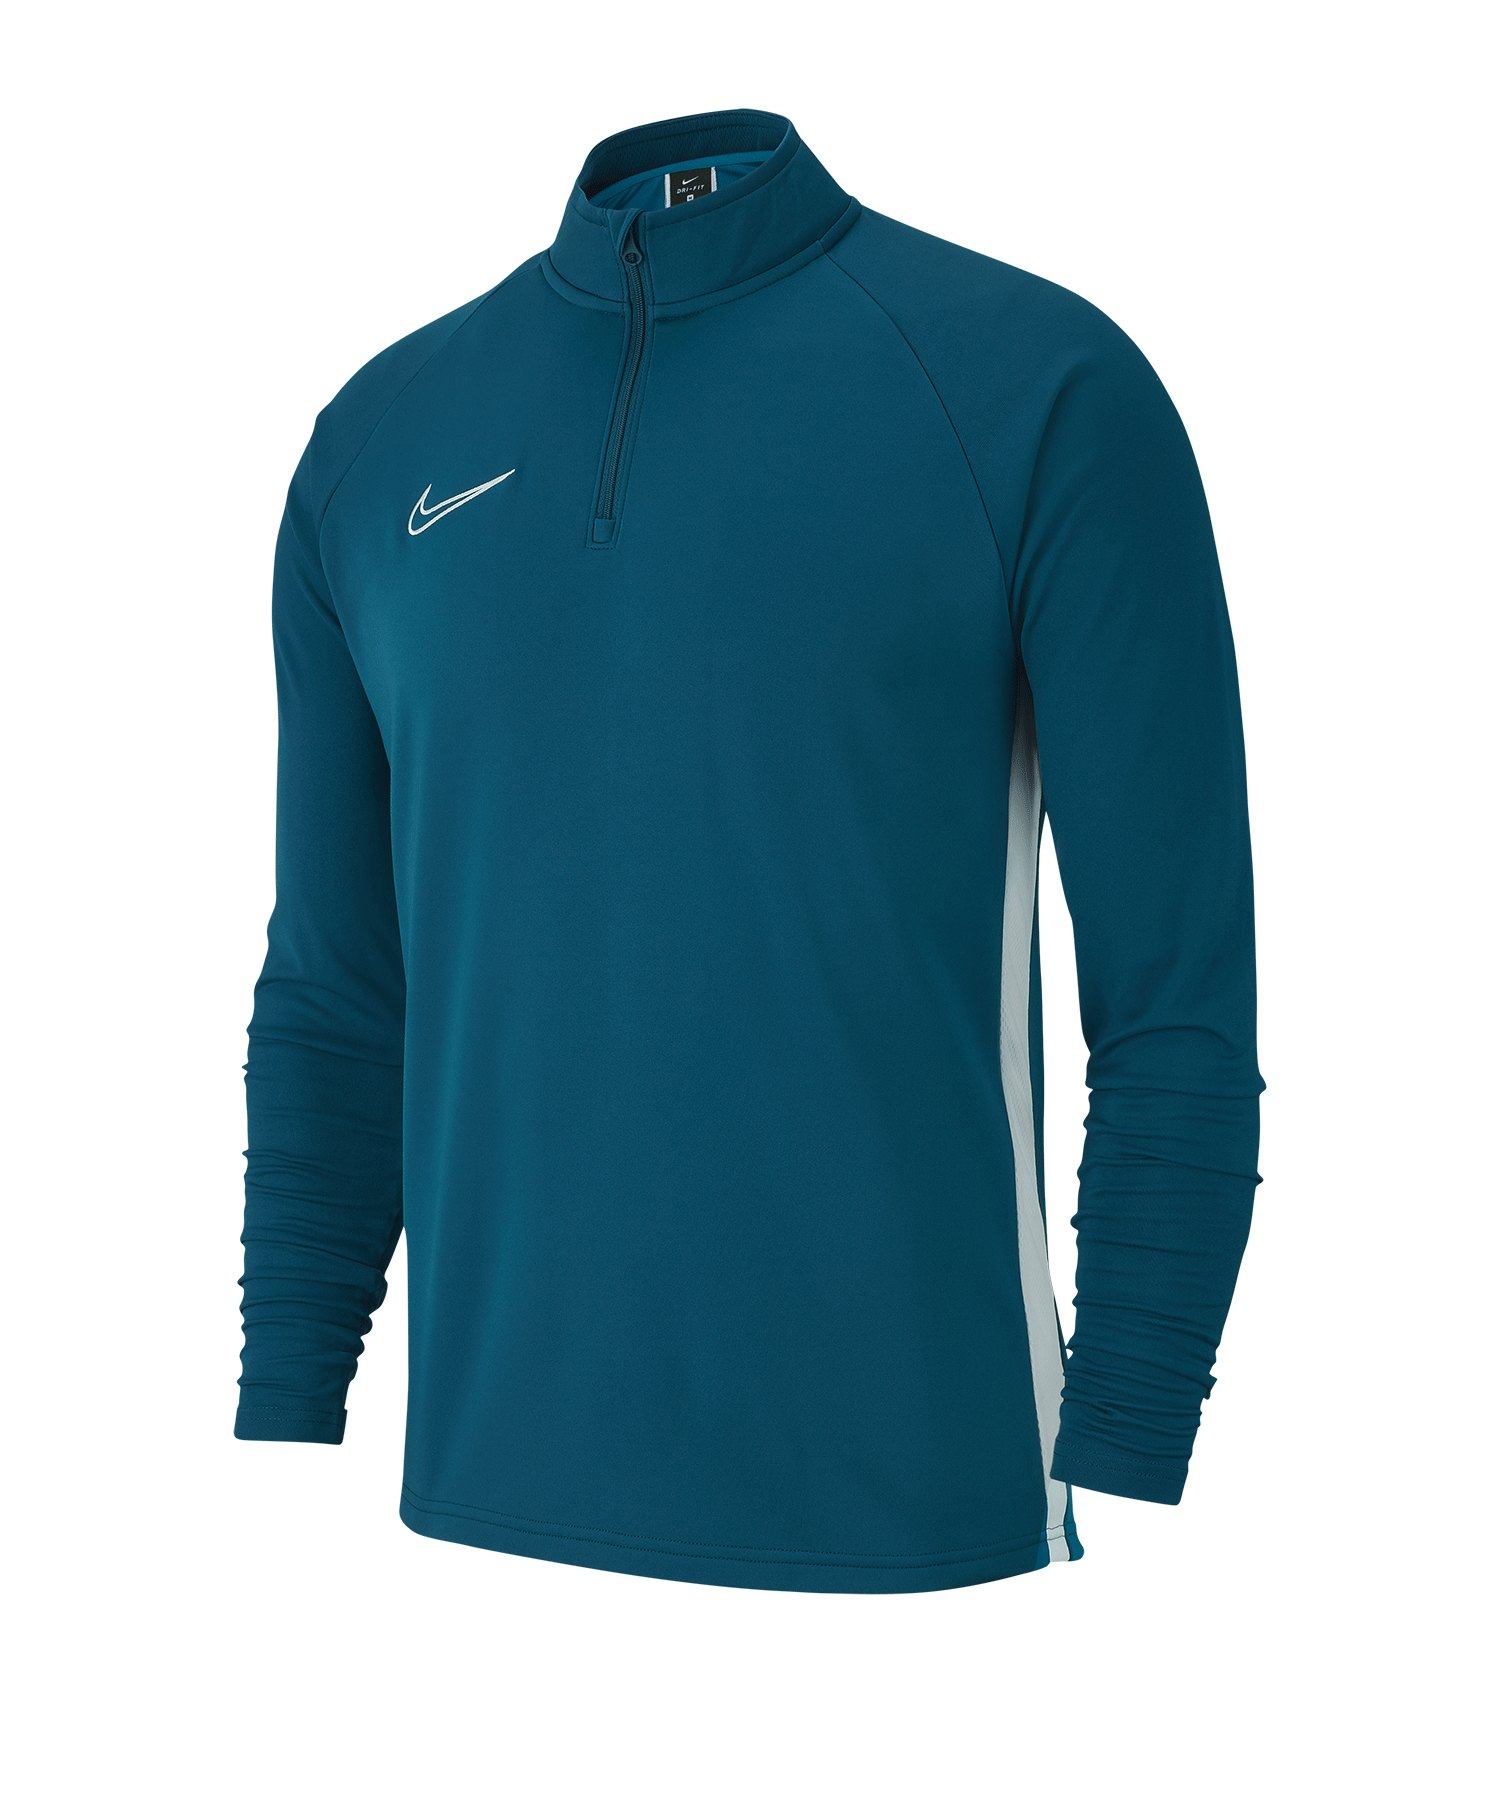 Nike Academy 19 1/4 Zip Drill Top Kids F404 - blau